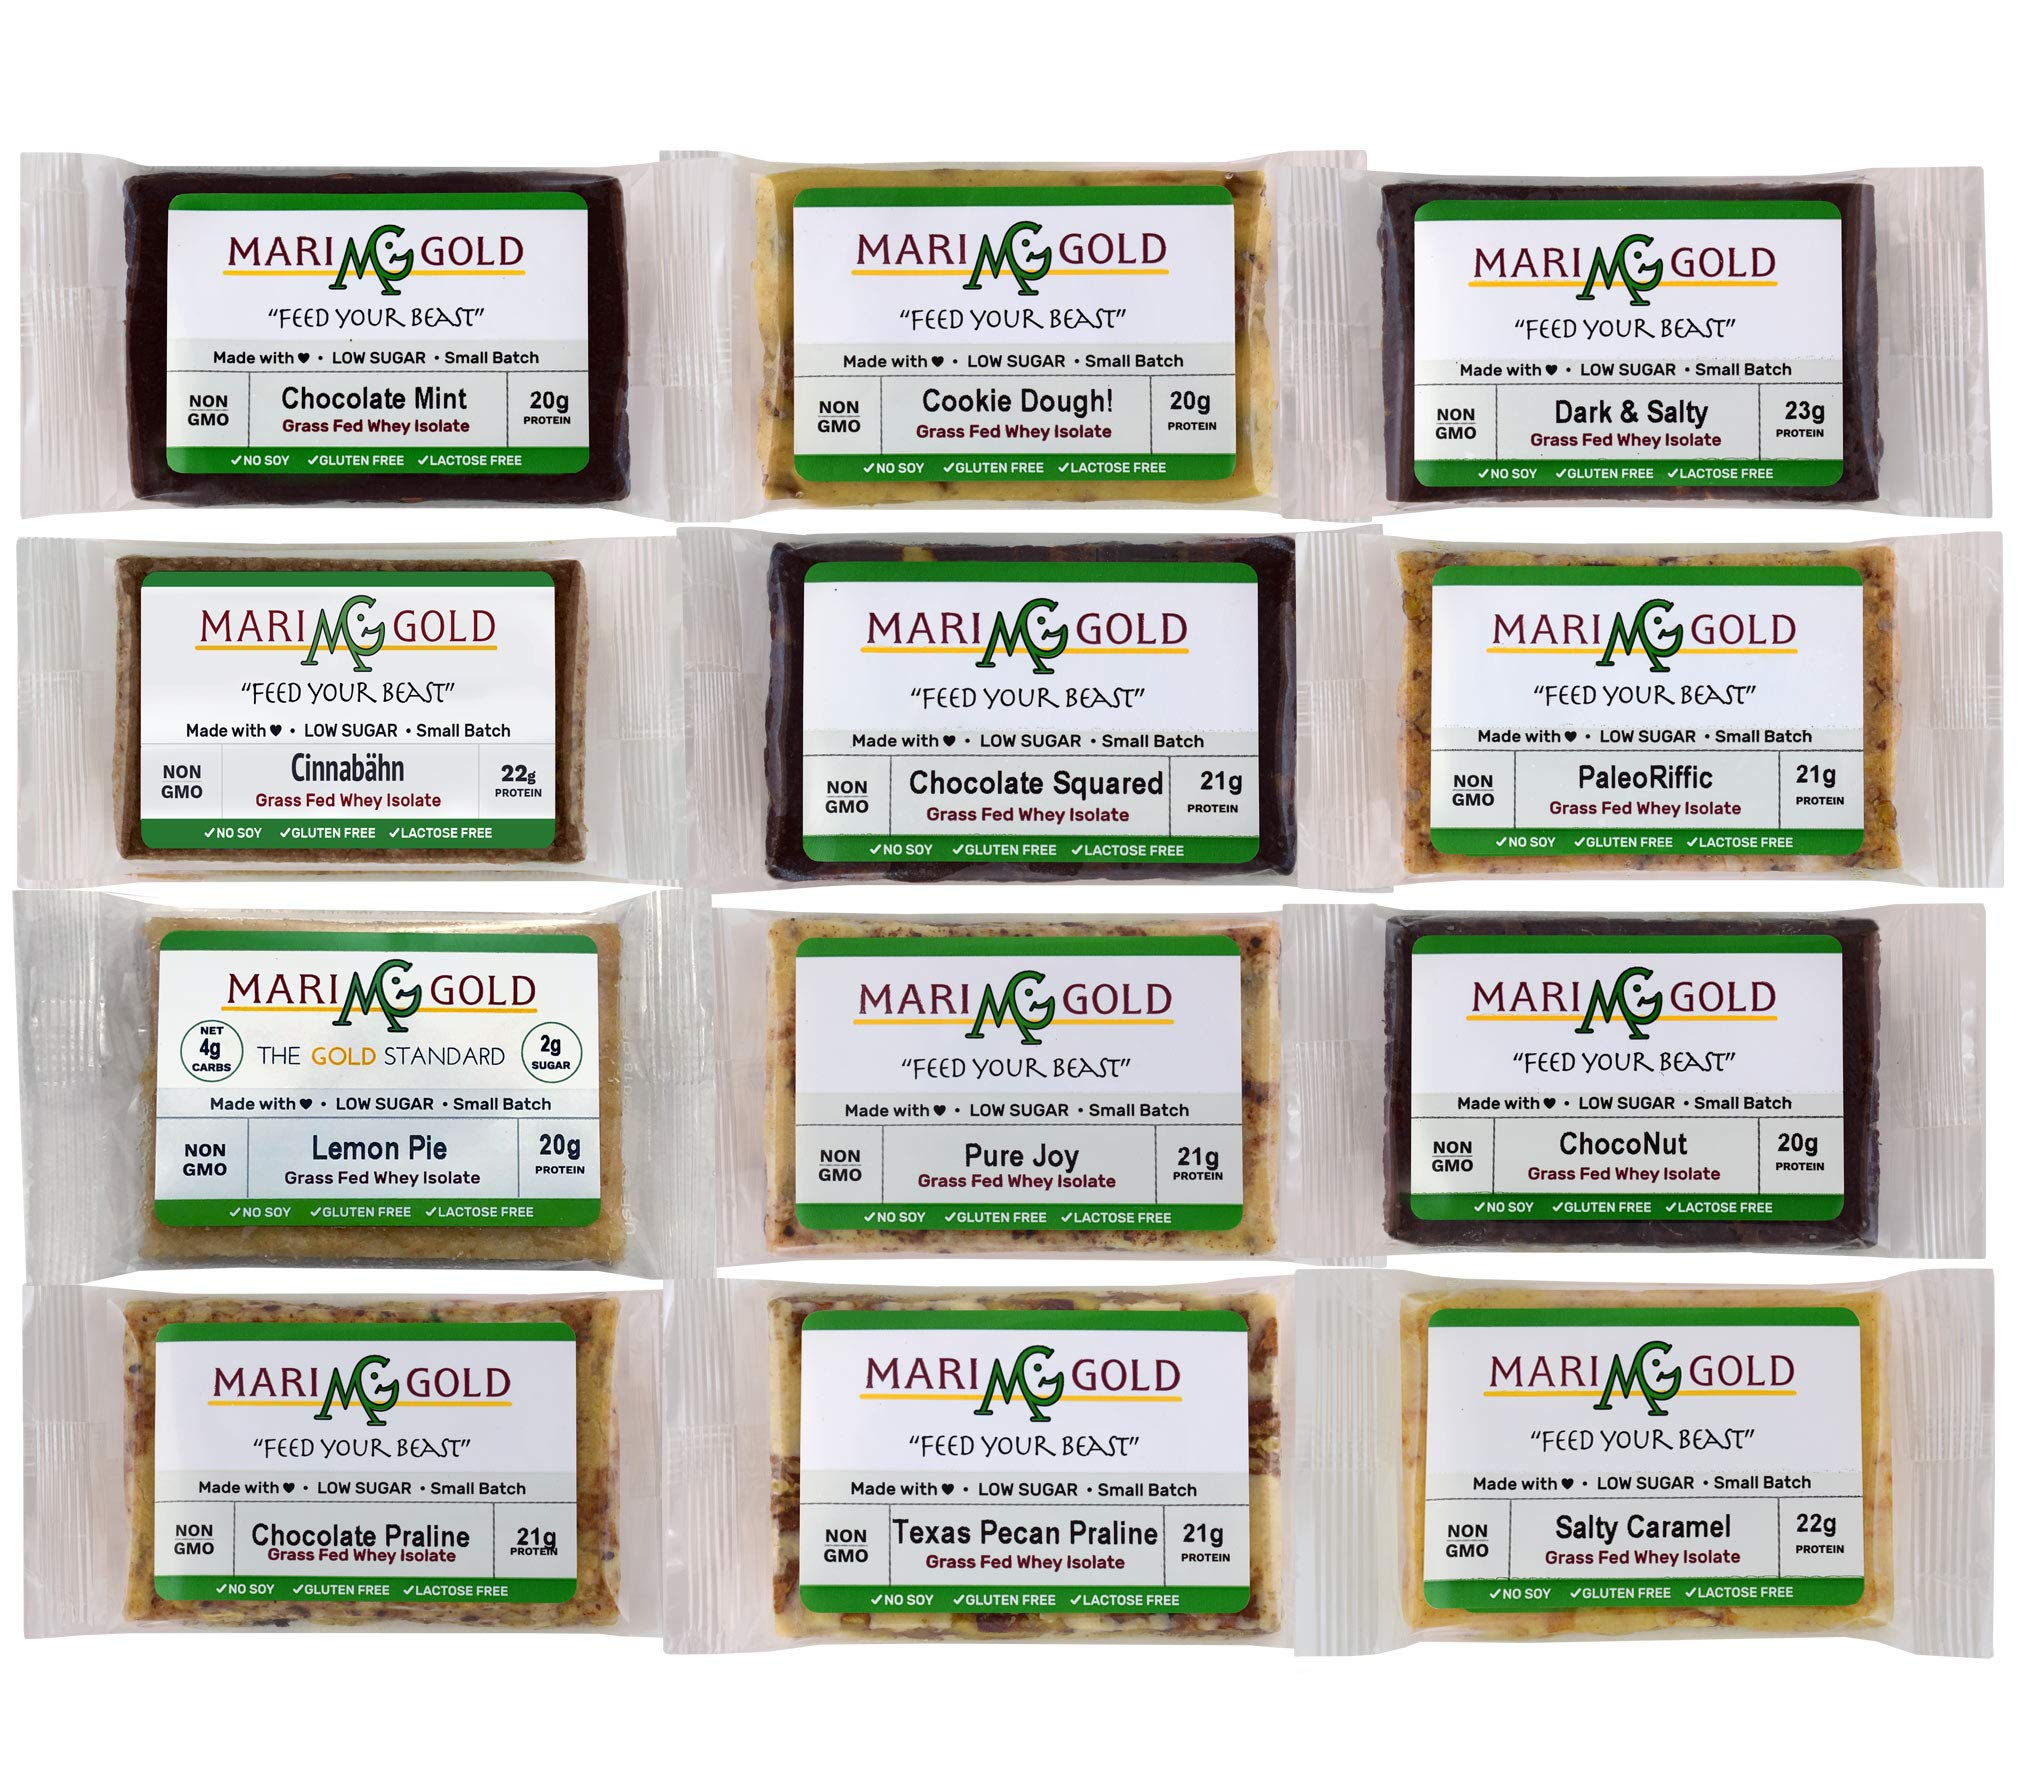 MariGold GRASS FED Whey Protein Bars Sampler Pack- 21+gm Protein, Even LOWER Sugar, Non GMO, Amazing Taste - Made Fresh, Ships Fresh. Purest Ingredients (12)